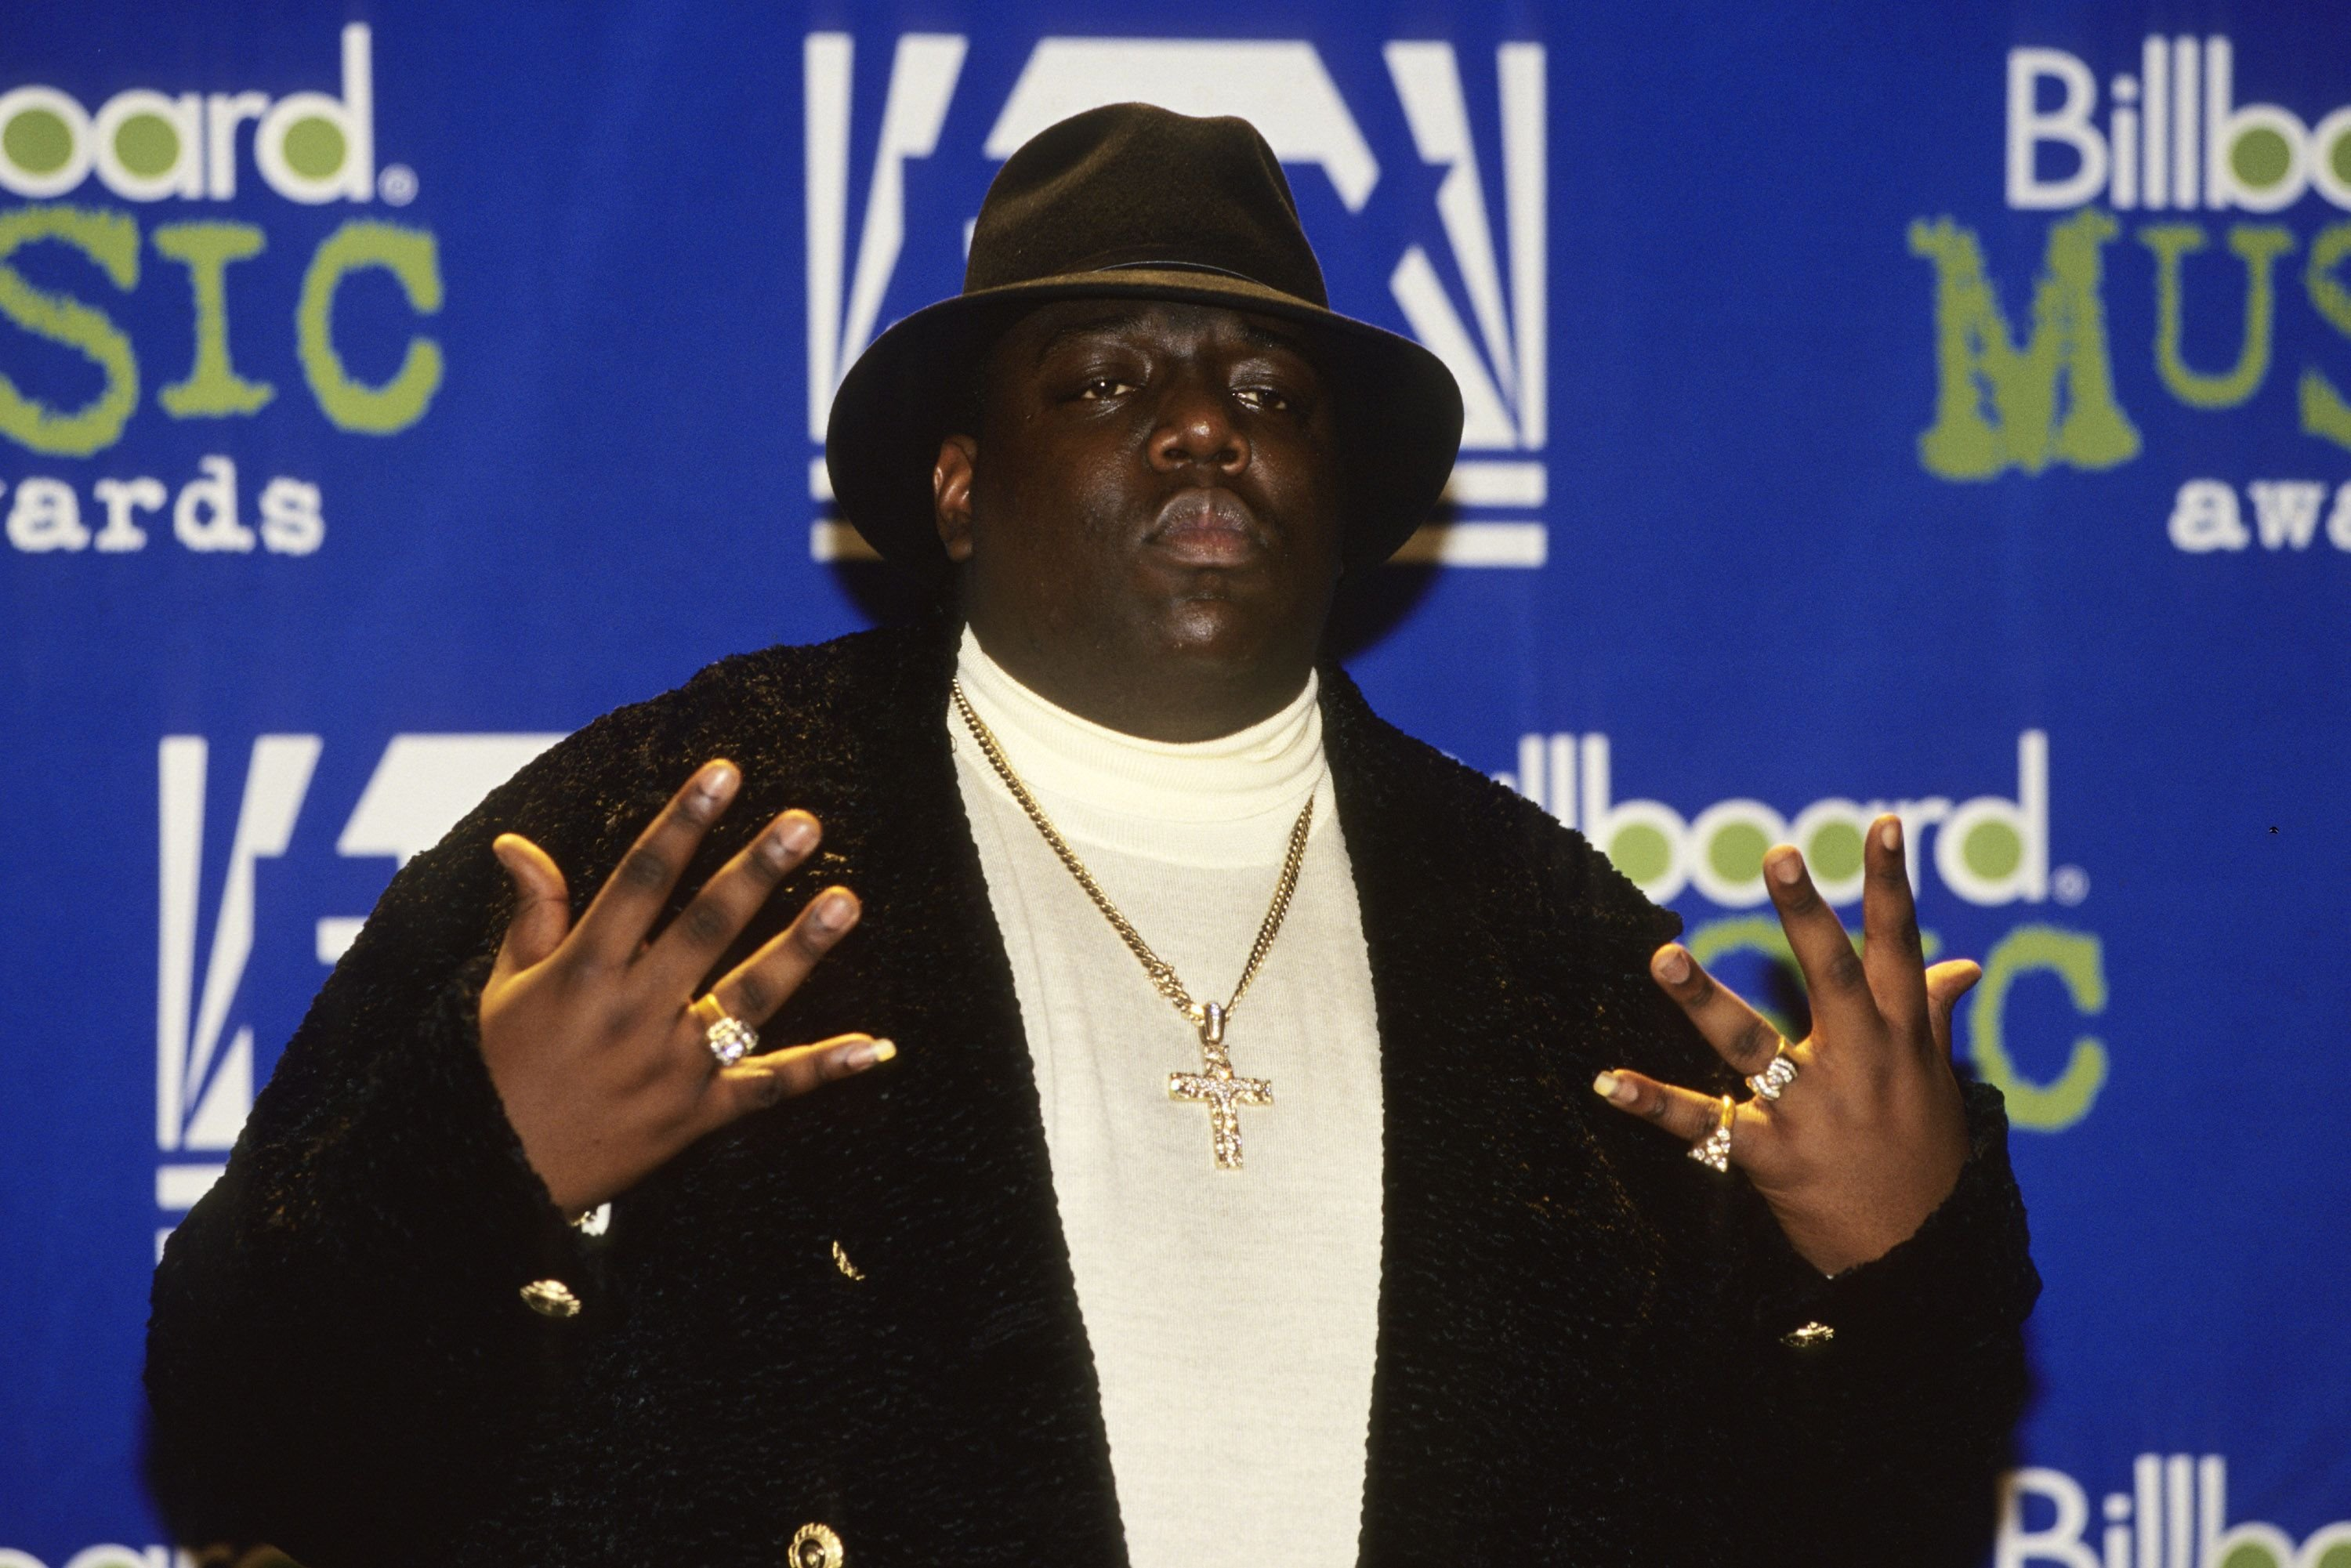 American rapper Notorious B.I.G. (born Christopher Wallace) at the 1995 Billboard Music Awards on December 6, 1996. | Source: Getty Images